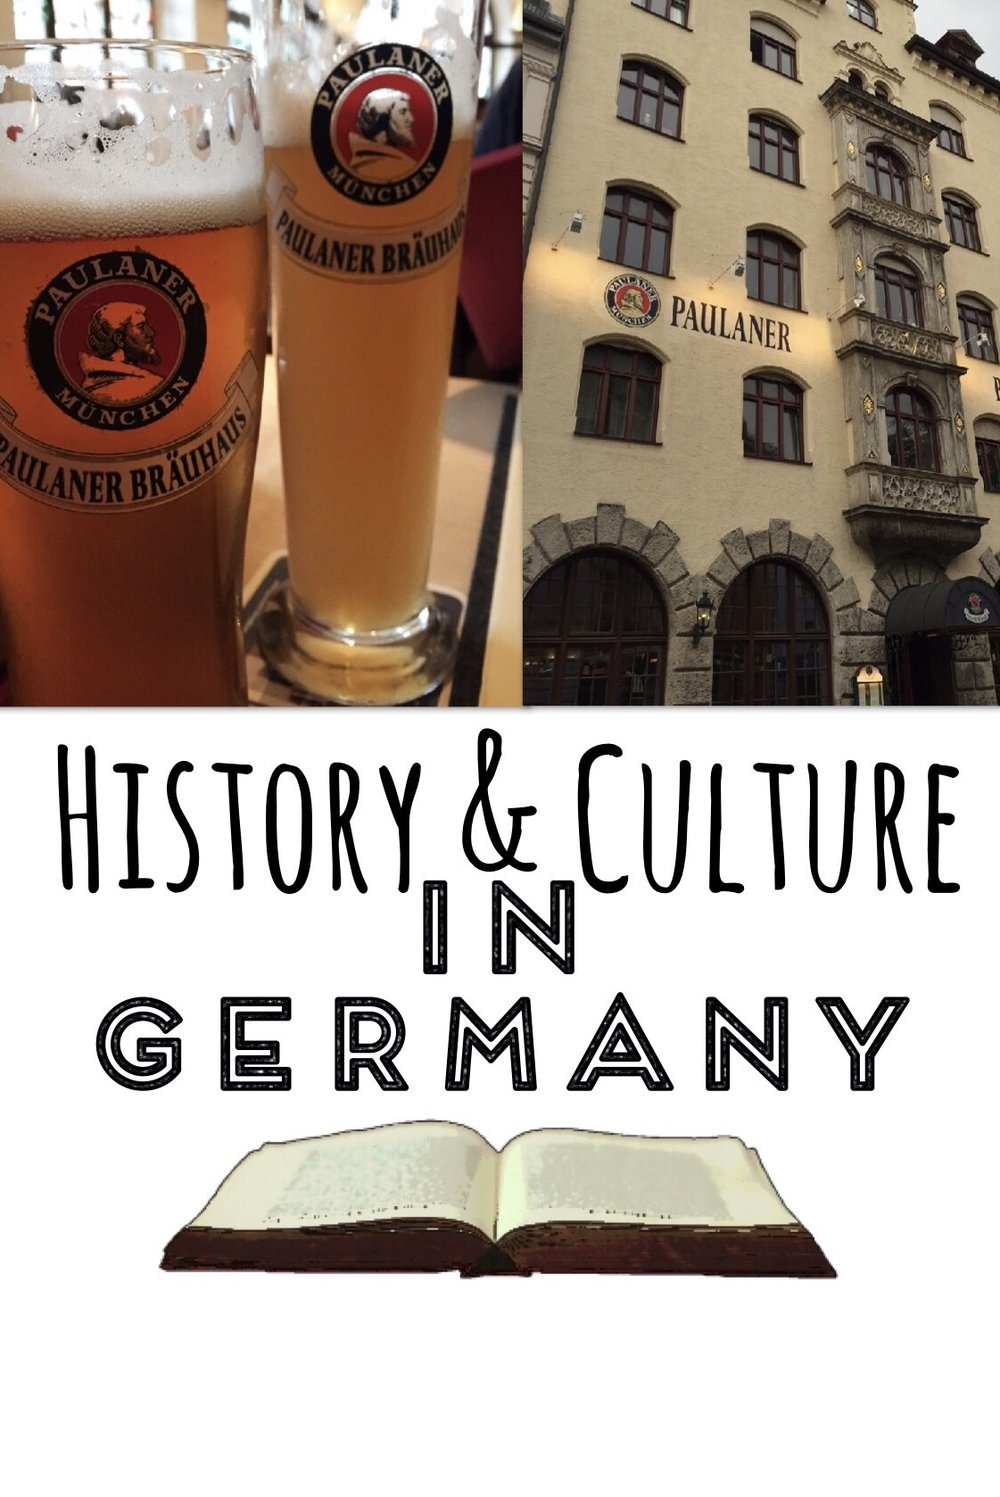 History and Culture Germany